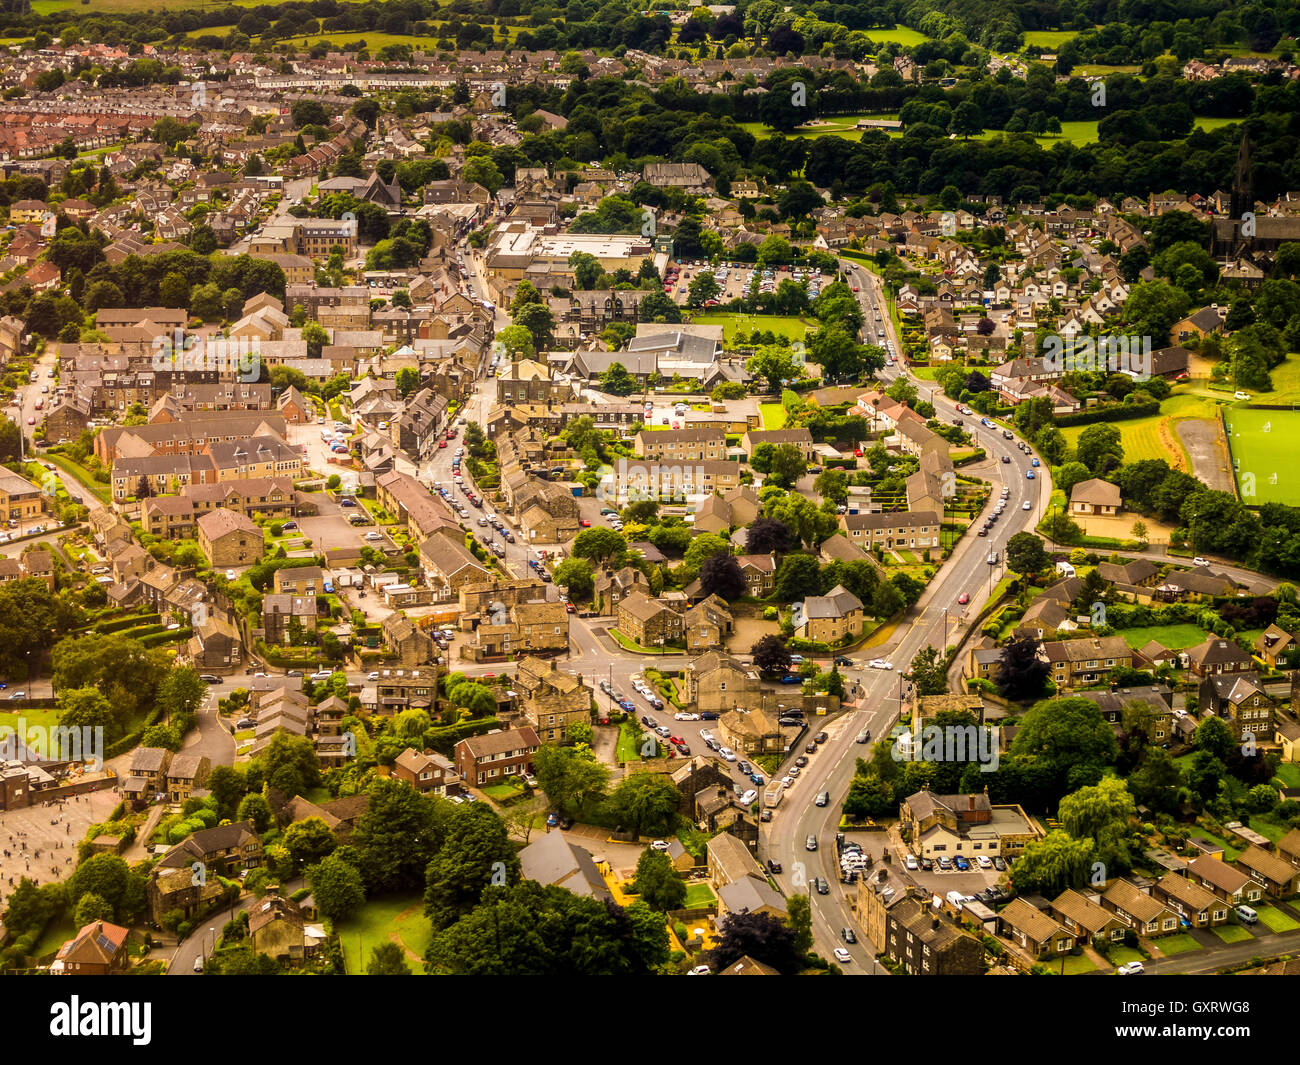 Aerial view of typical suburban area with houses and businesses - Stock Image